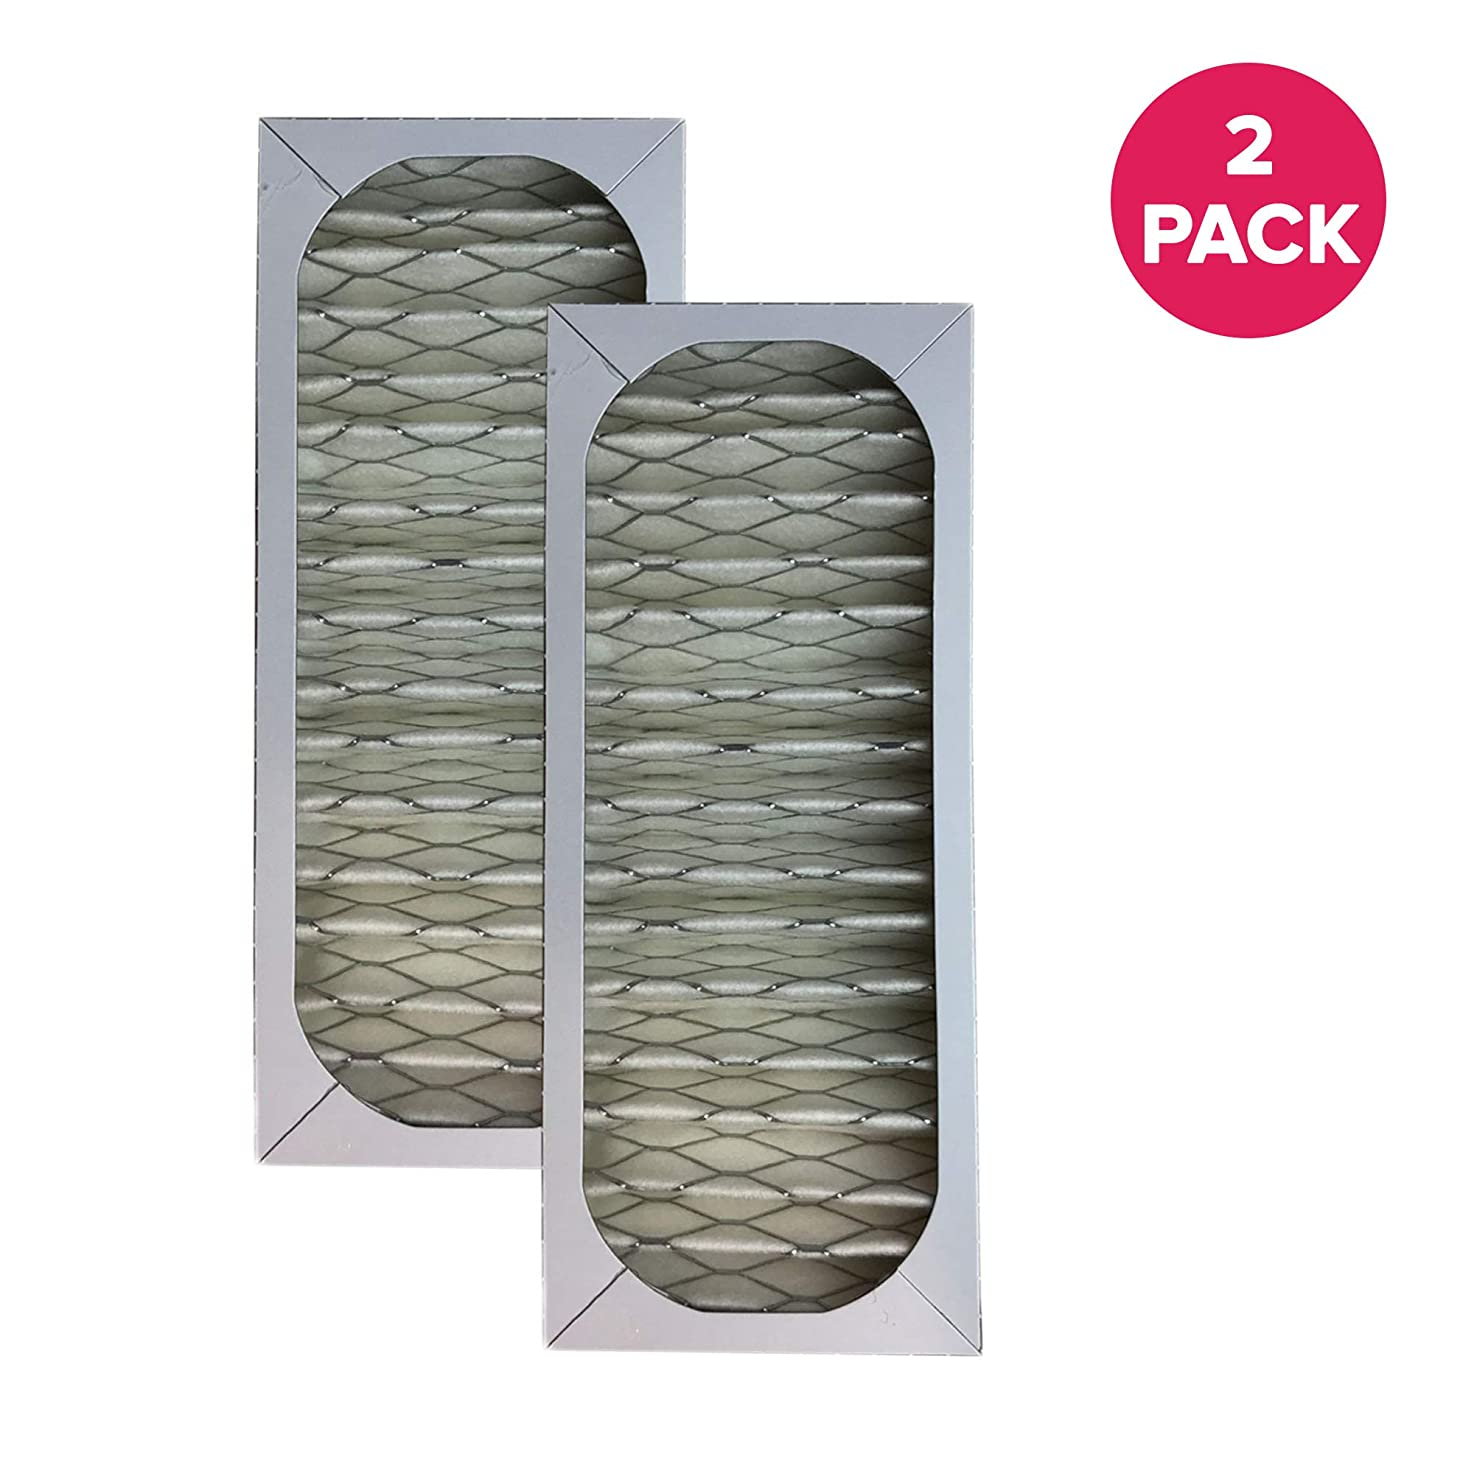 Think Crucial 2 Replacements for Hunter 30917 Air Purifier Filter Fits 30027 & 30028